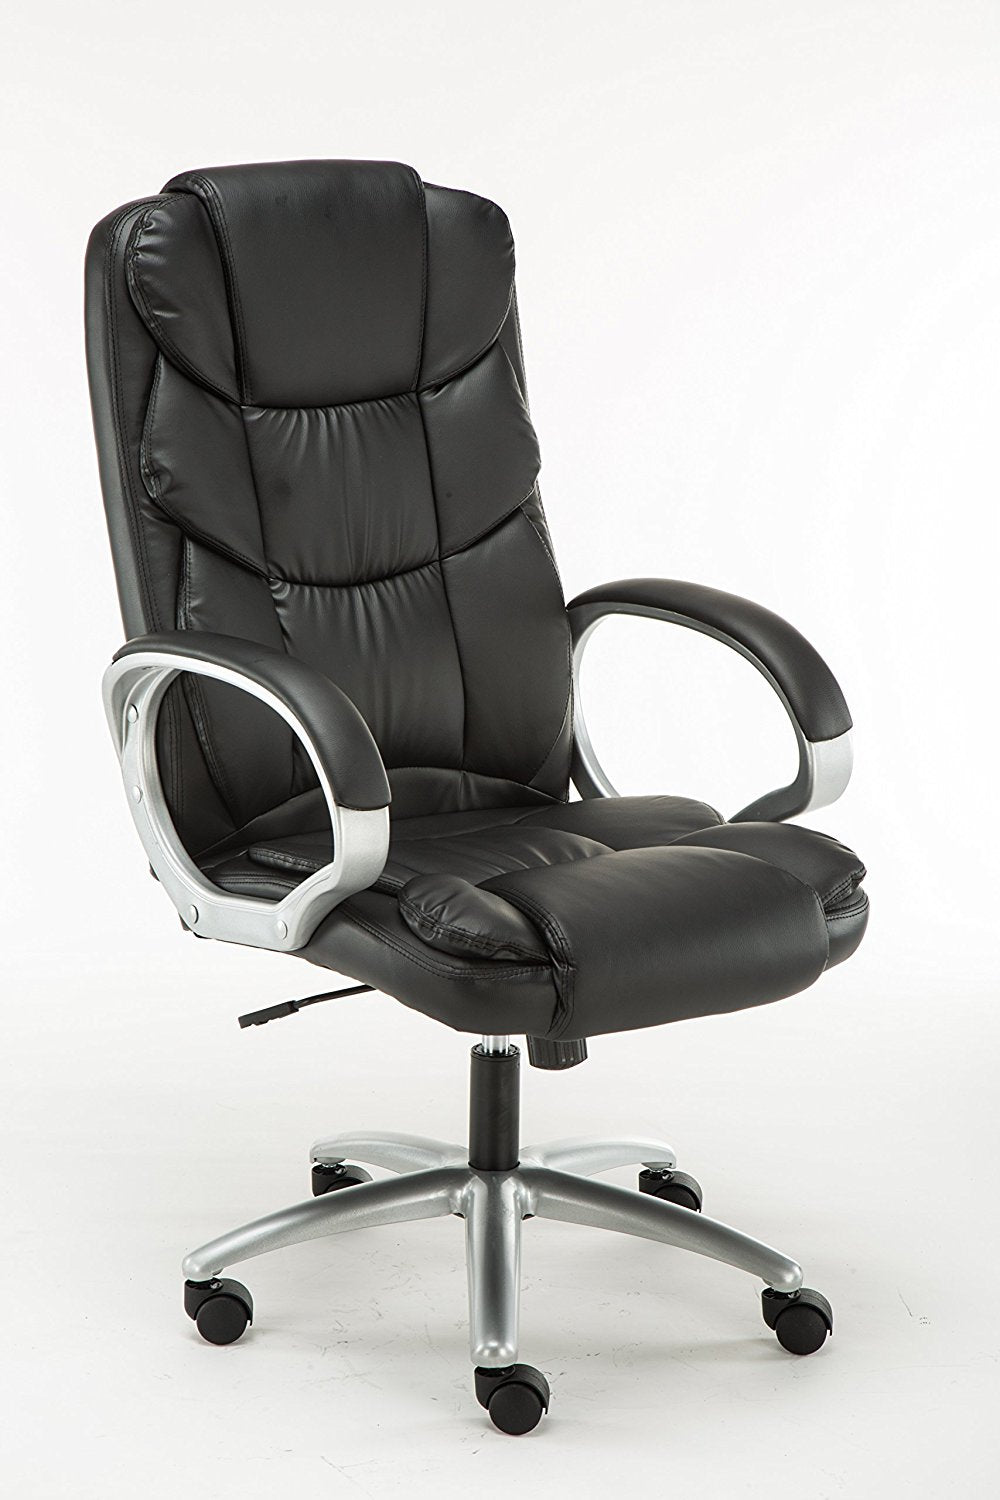 Adjustable Tilt High Back Swivel Leather Executive Chair, Black